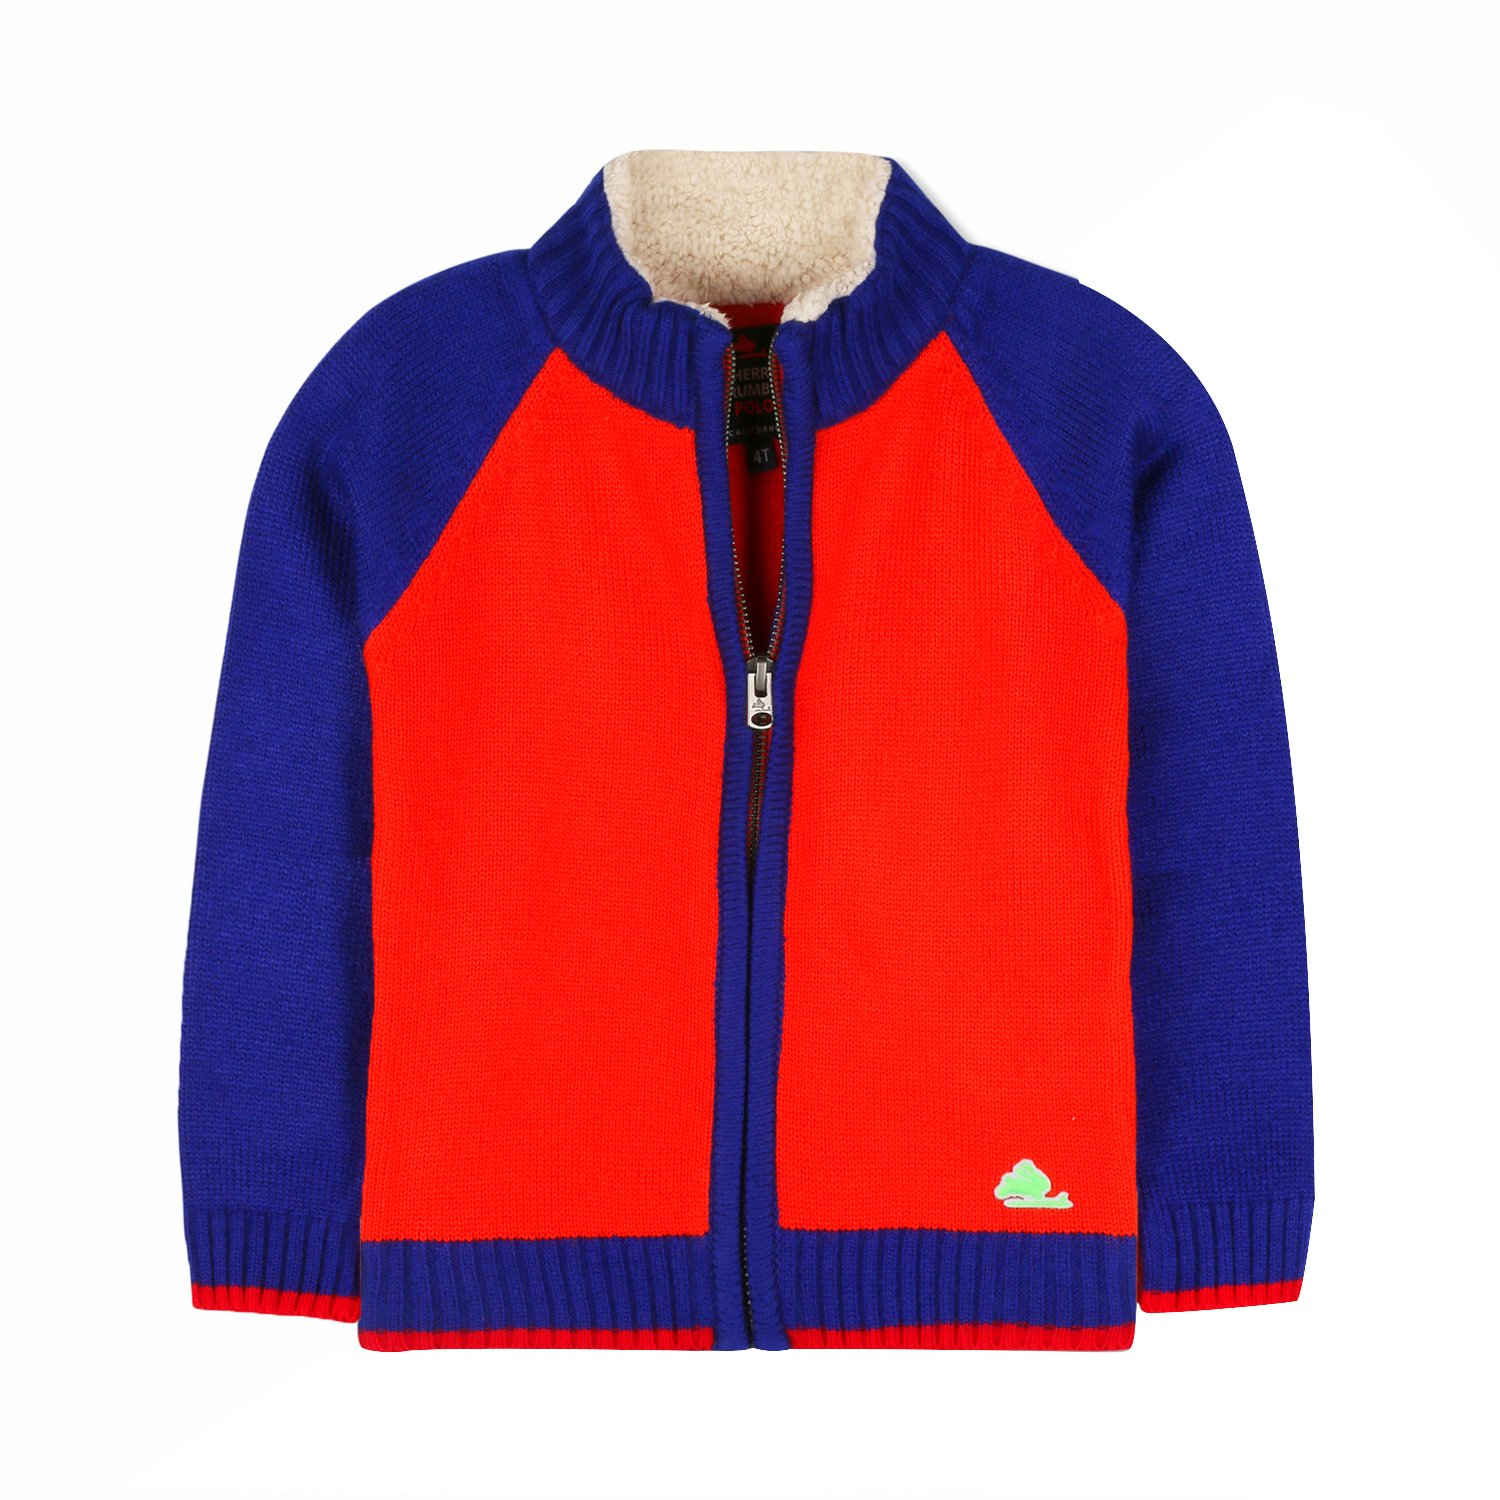 Cherry Crumble Sporty Zip-Down Sweater for Boys /& Girls